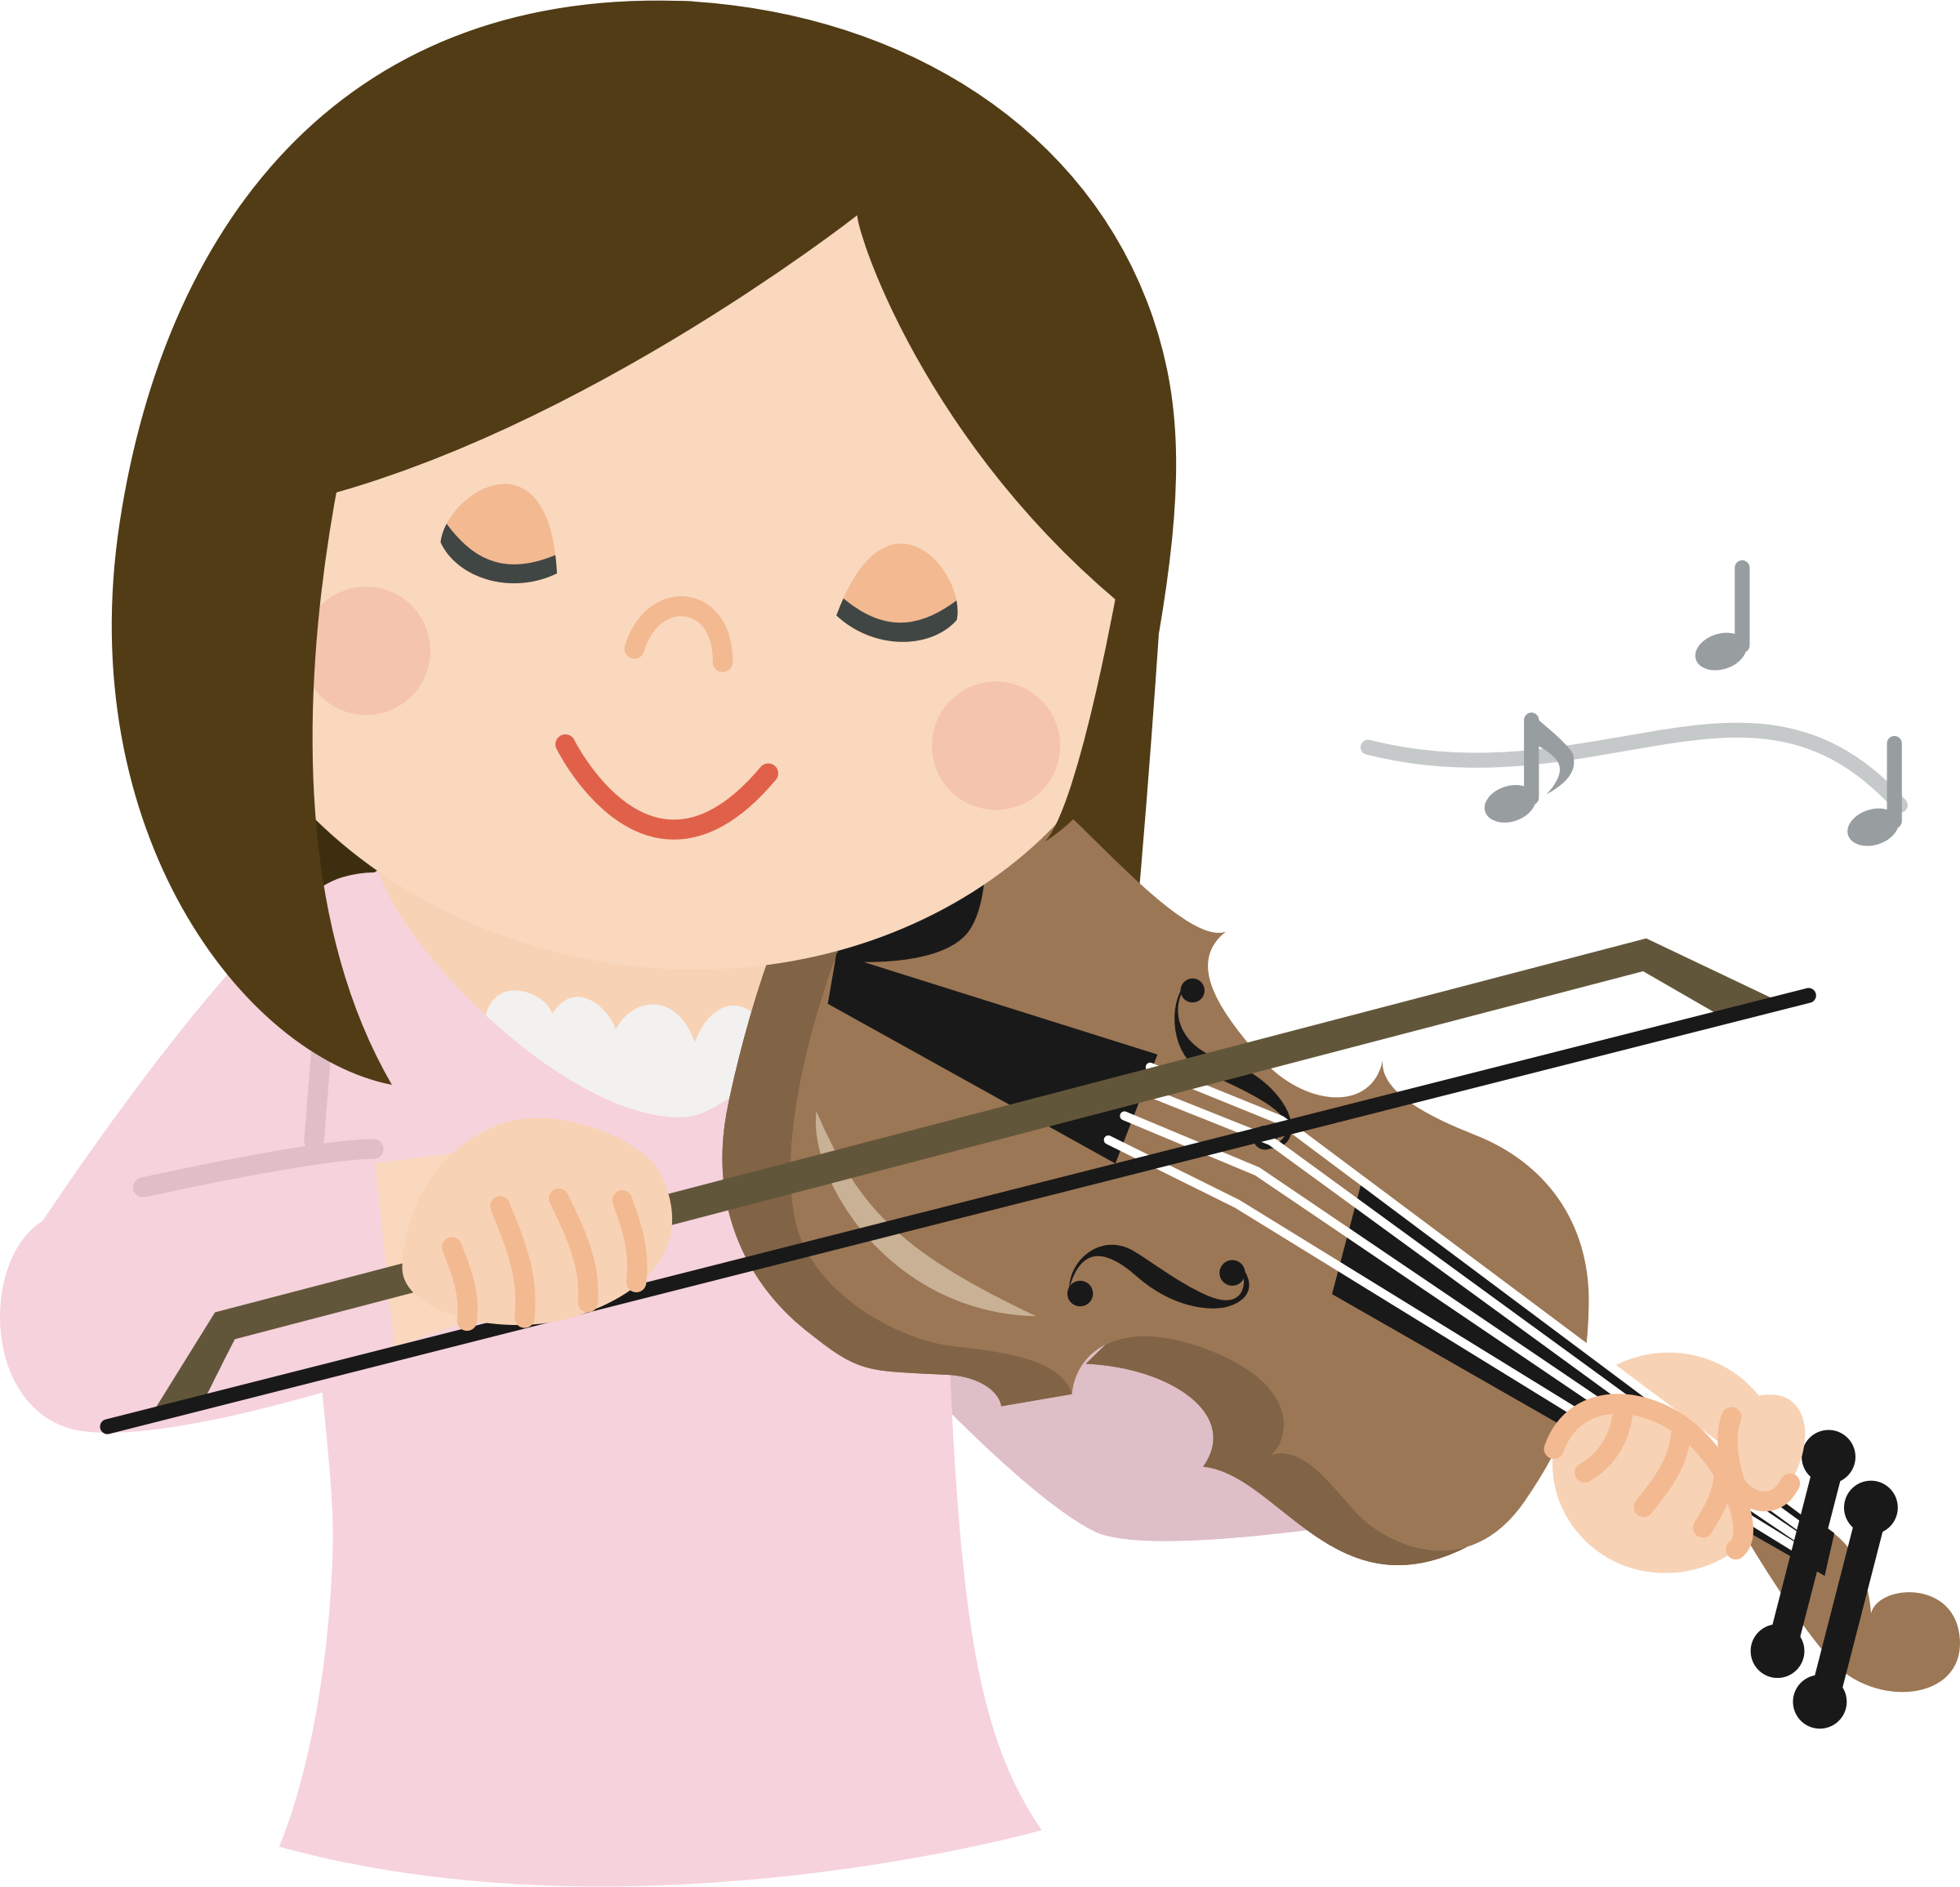 Girl playing the violin clipart clipart free stock Girl playing violin clipart clipart images gallery for free download ... clipart free stock